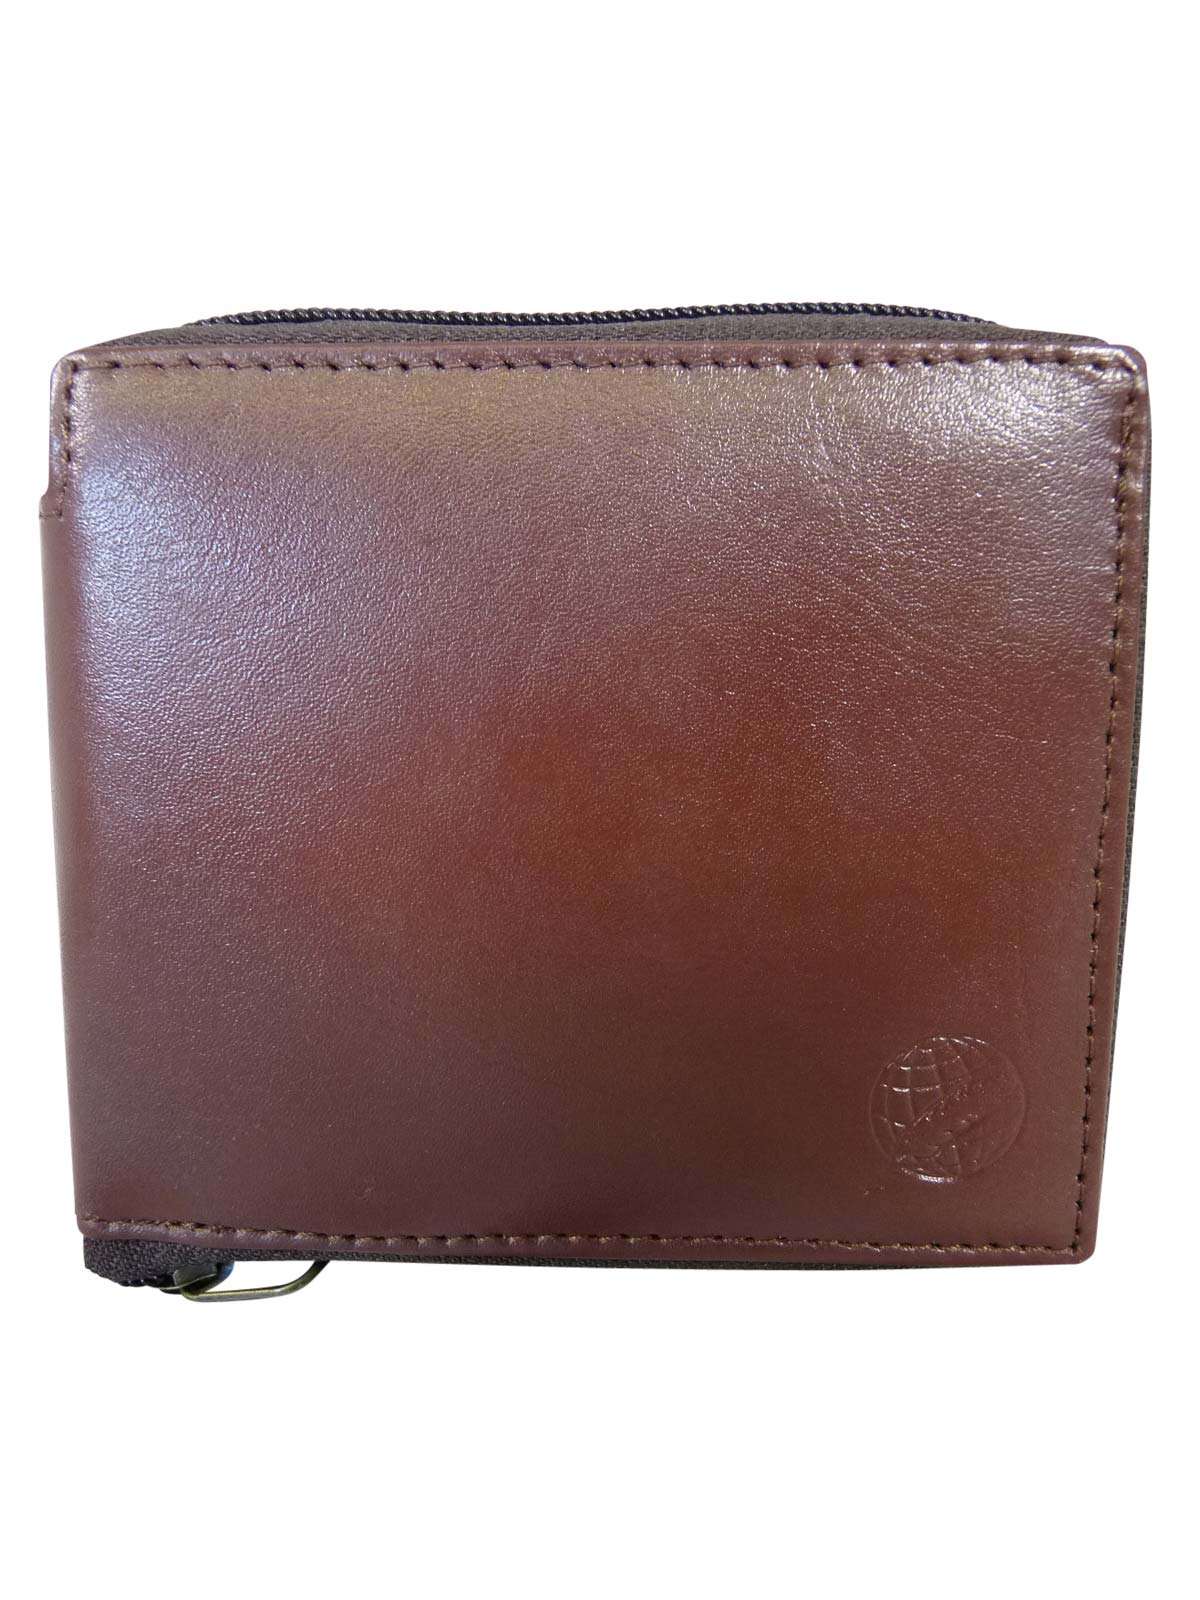 Zip around mens leather wallet RL184LB light brown front view